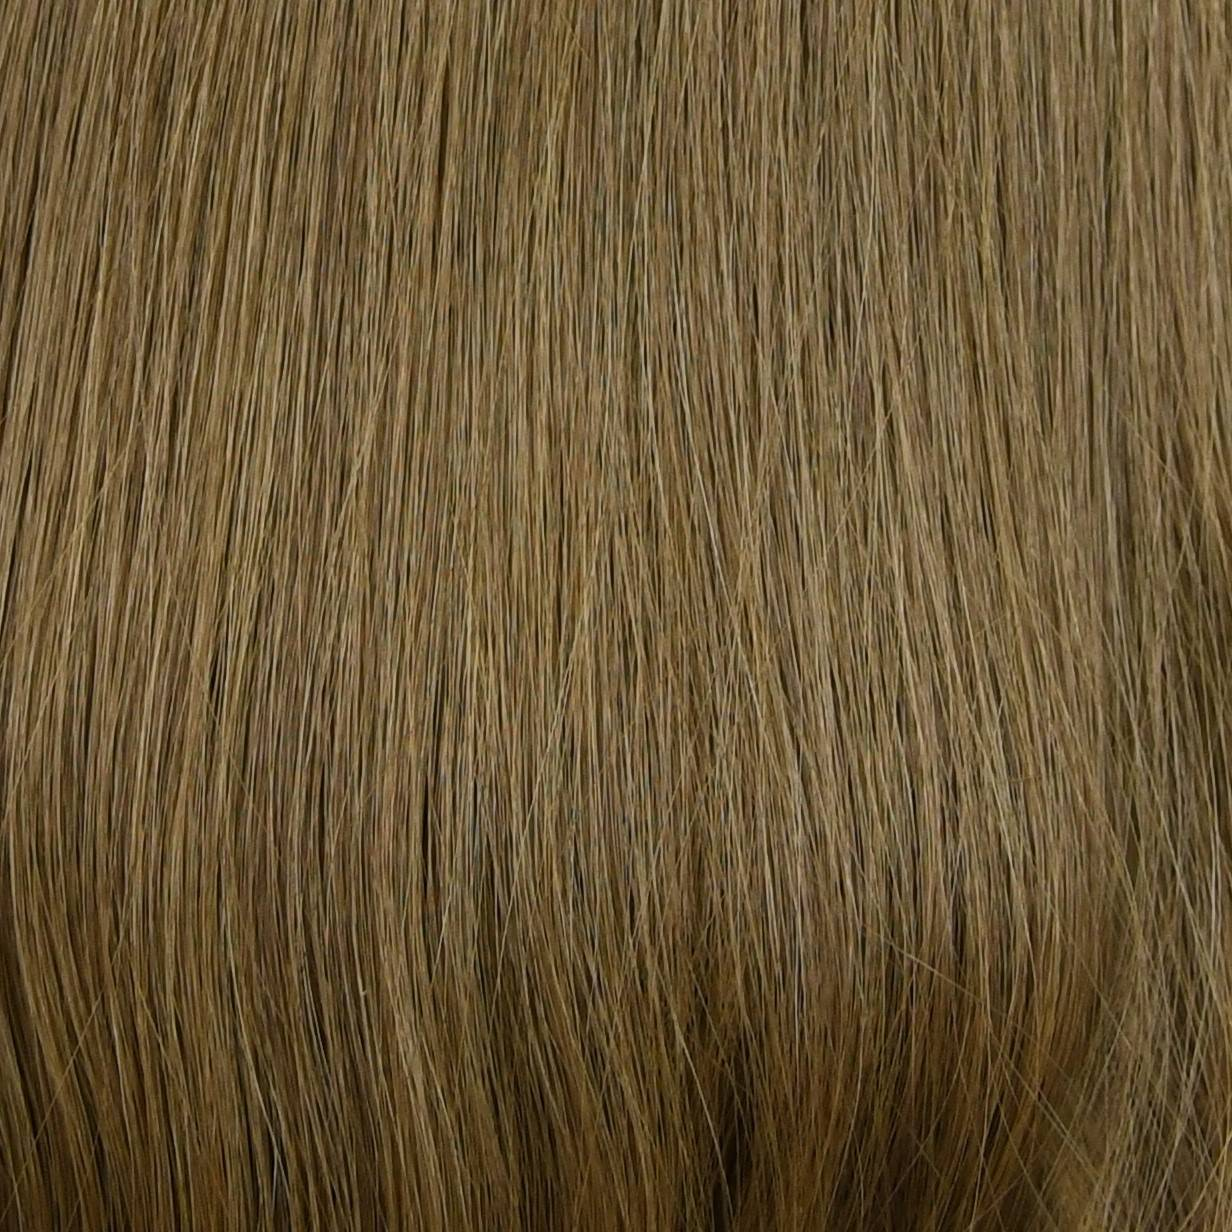 blend of light golden and light brown hair extensions color sample in hair color chart